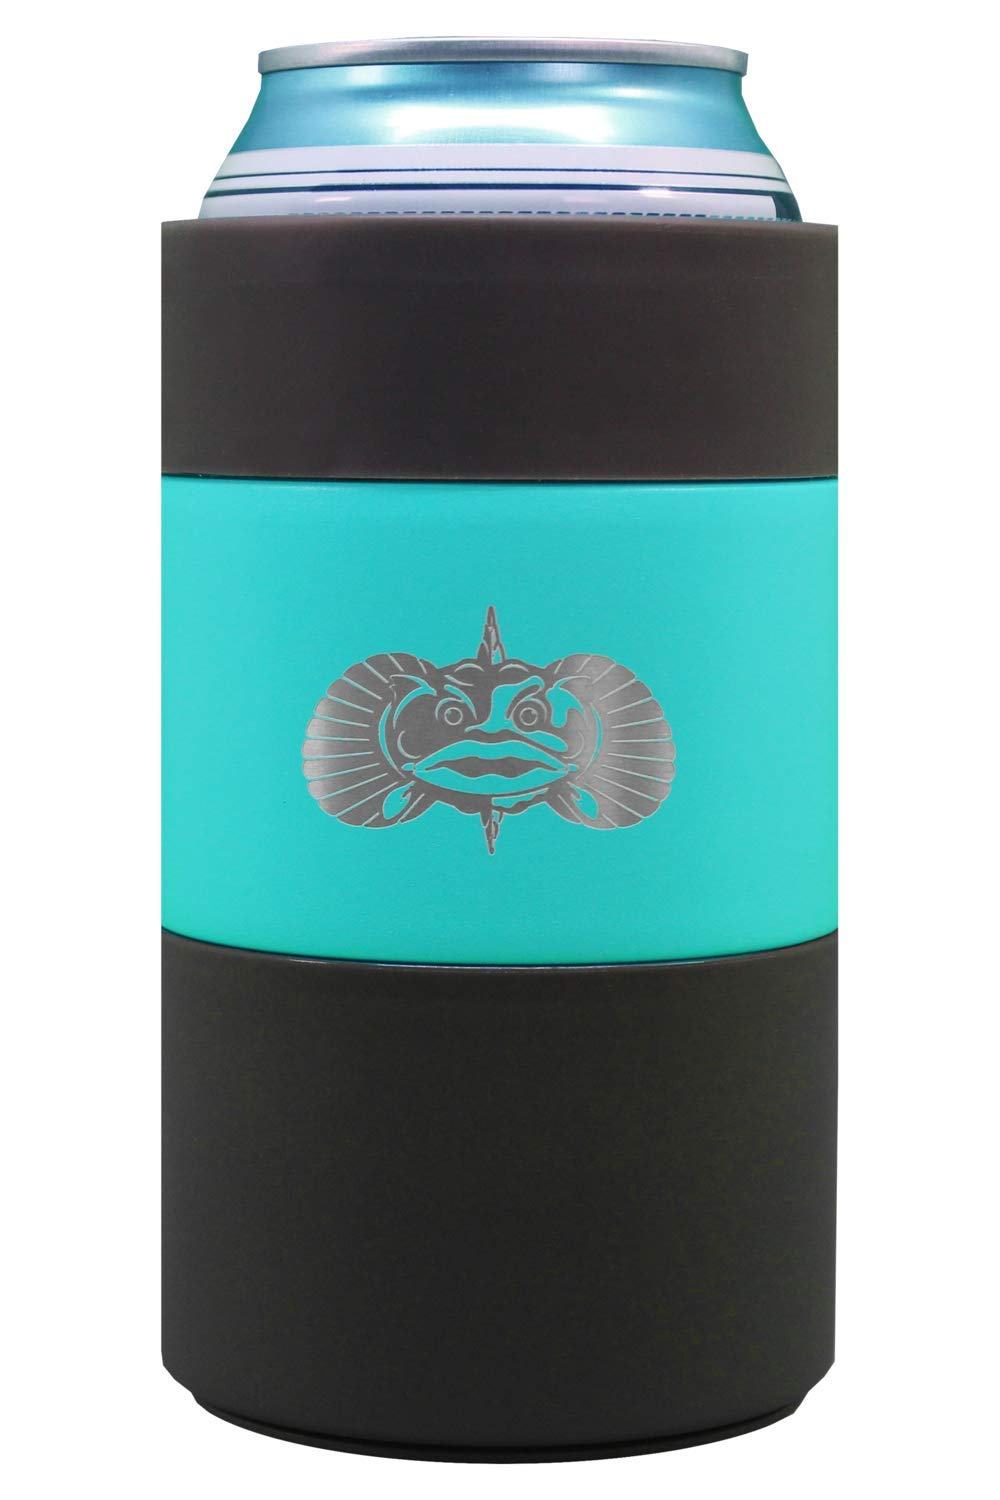 Toadfish Can Cooler - Non-Tipping Suction Cup Can Cooler - Double Wall Vacuum Insulation Insulated Can Cooler Designed to Stay Upright and Not Spill - Stainless Steel Construction (Teal) by Toadfish